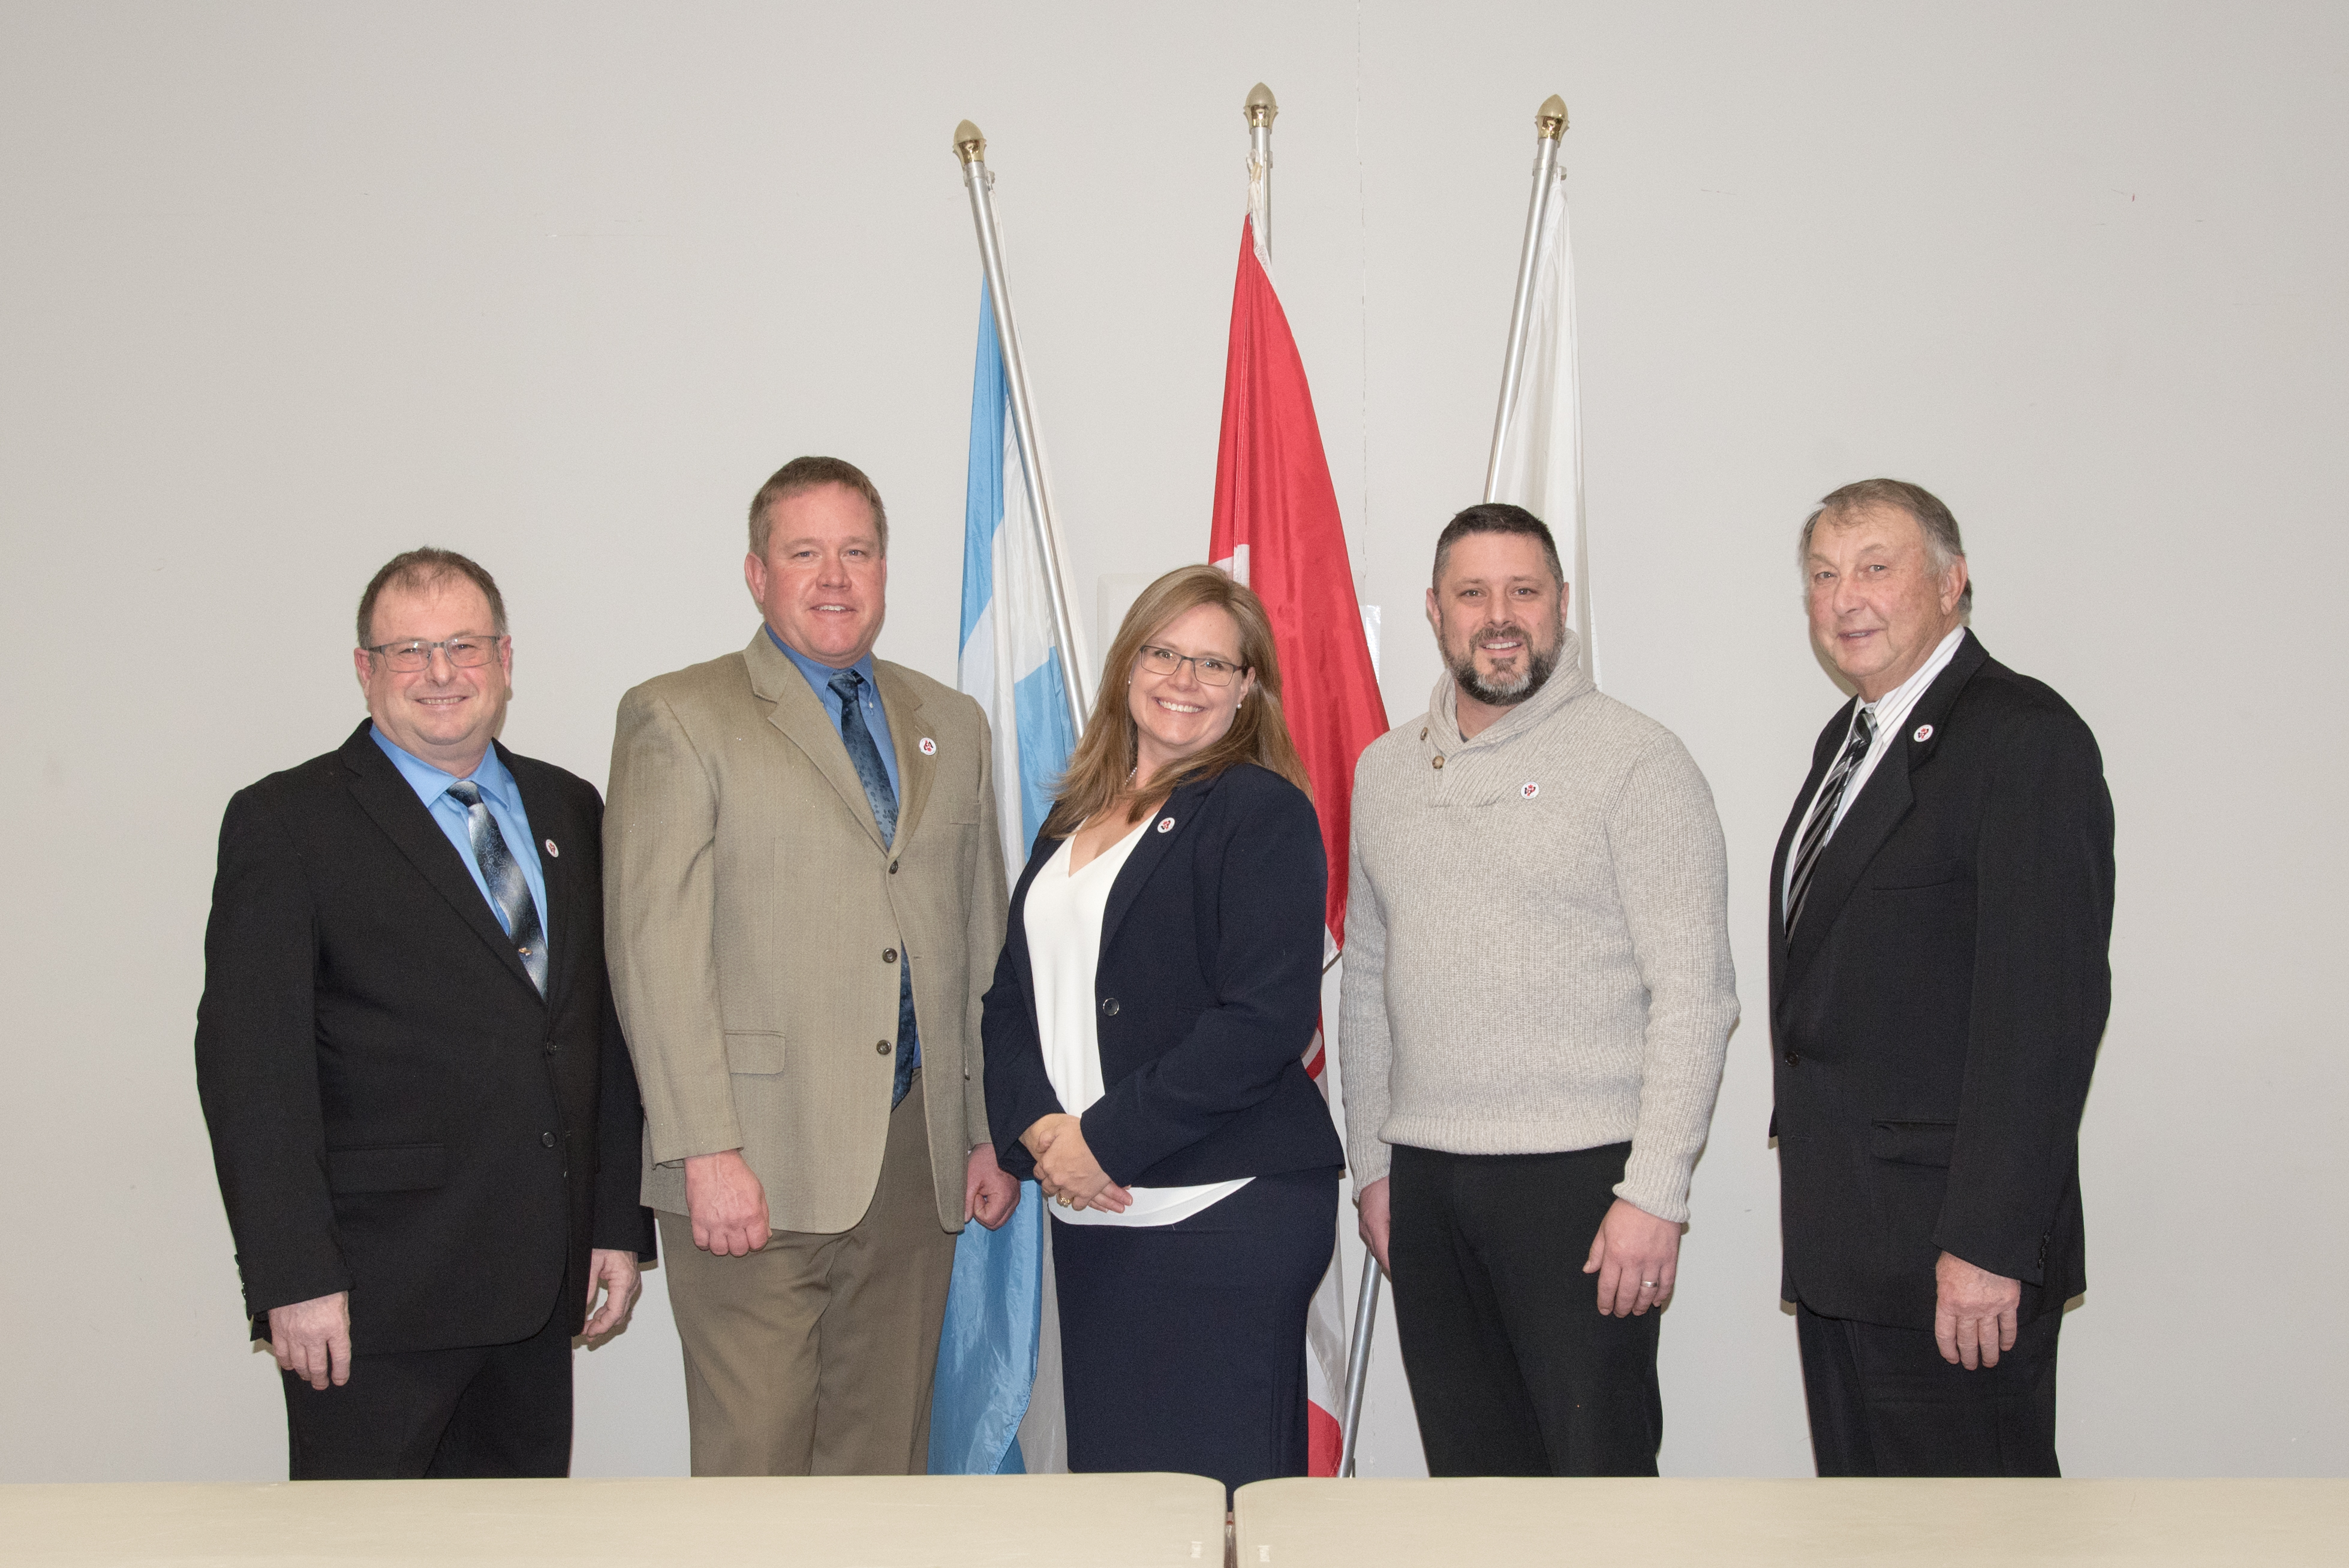 Warwick Township Council members